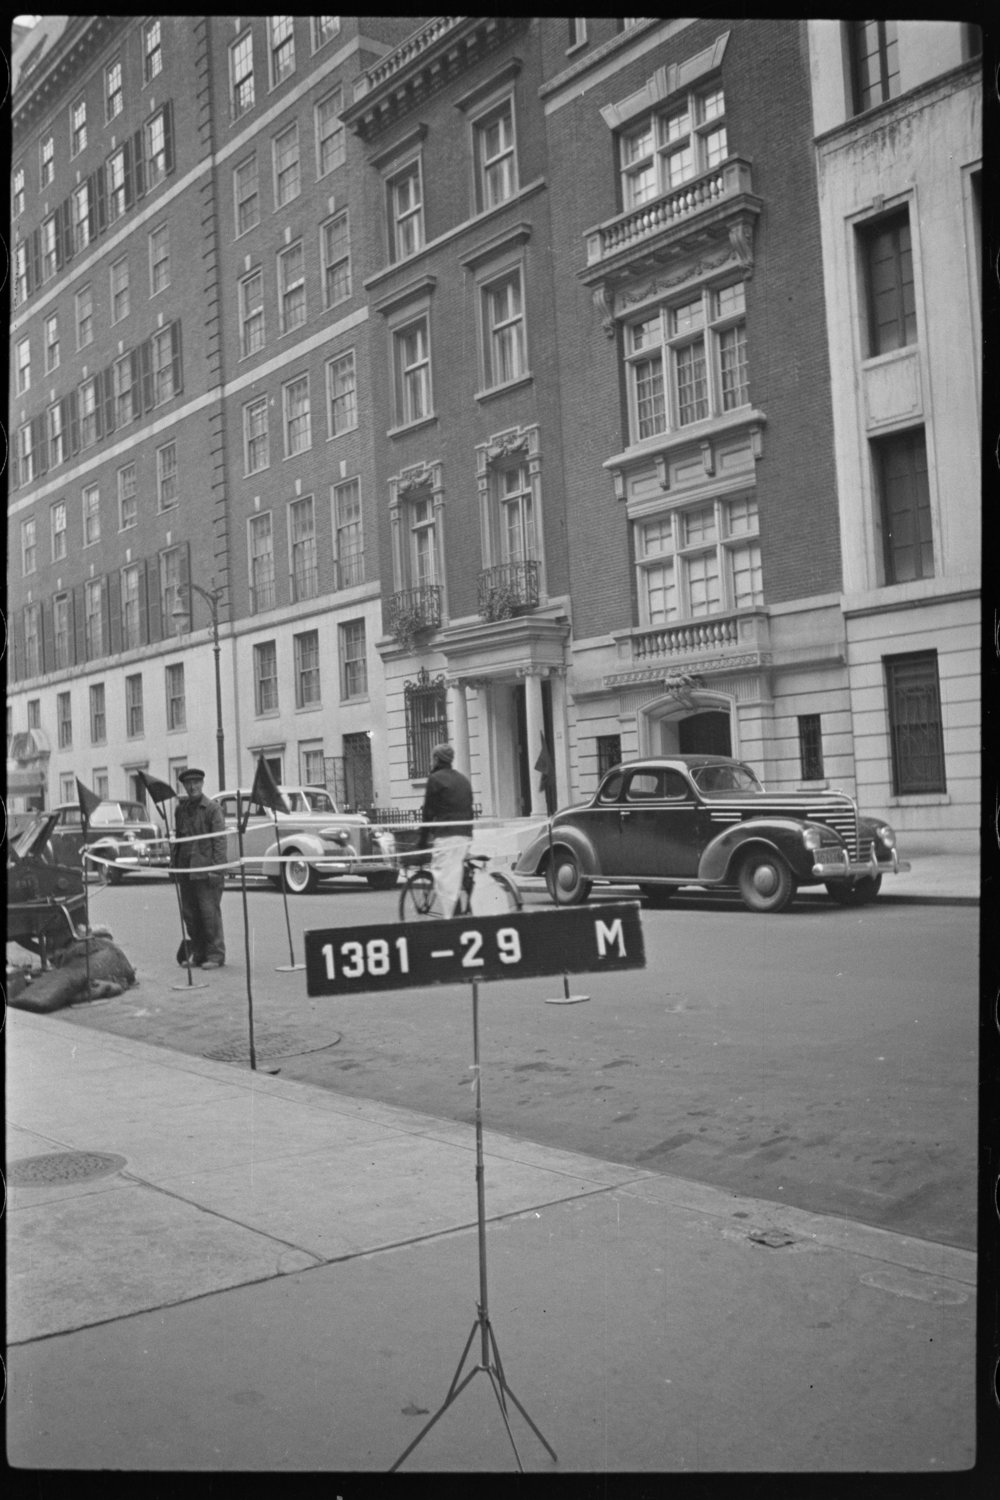 Warhol's townhouse at 57 E. 66th Street as it looked in the 1940 tax photo (at left). Department of Finance Collection, NYC Municipal Archives.